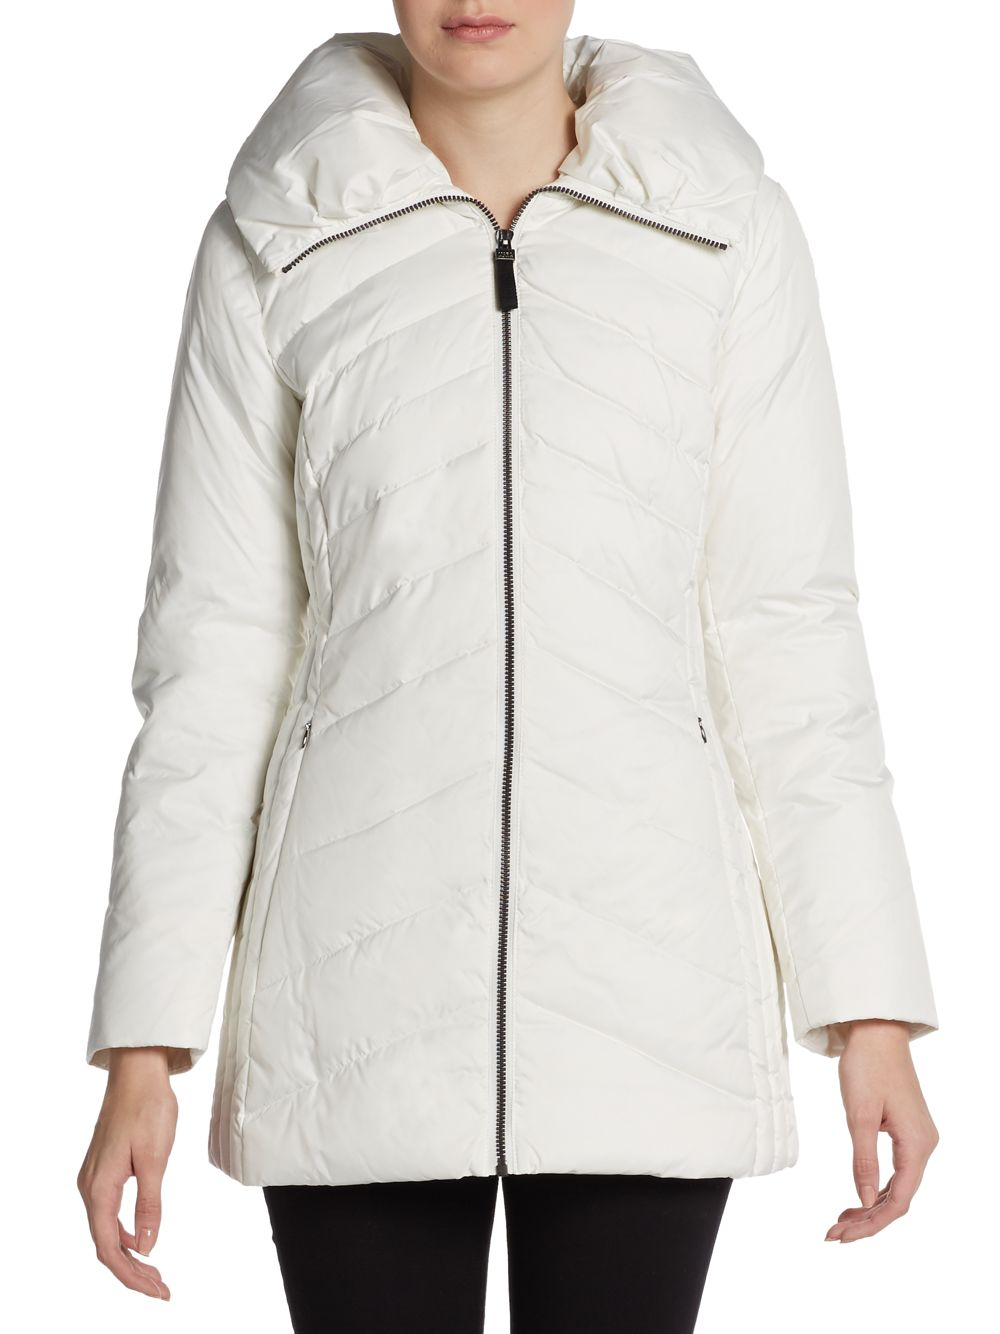 Marc New York Mulberry Quilted Puffer Jacket In White Lyst